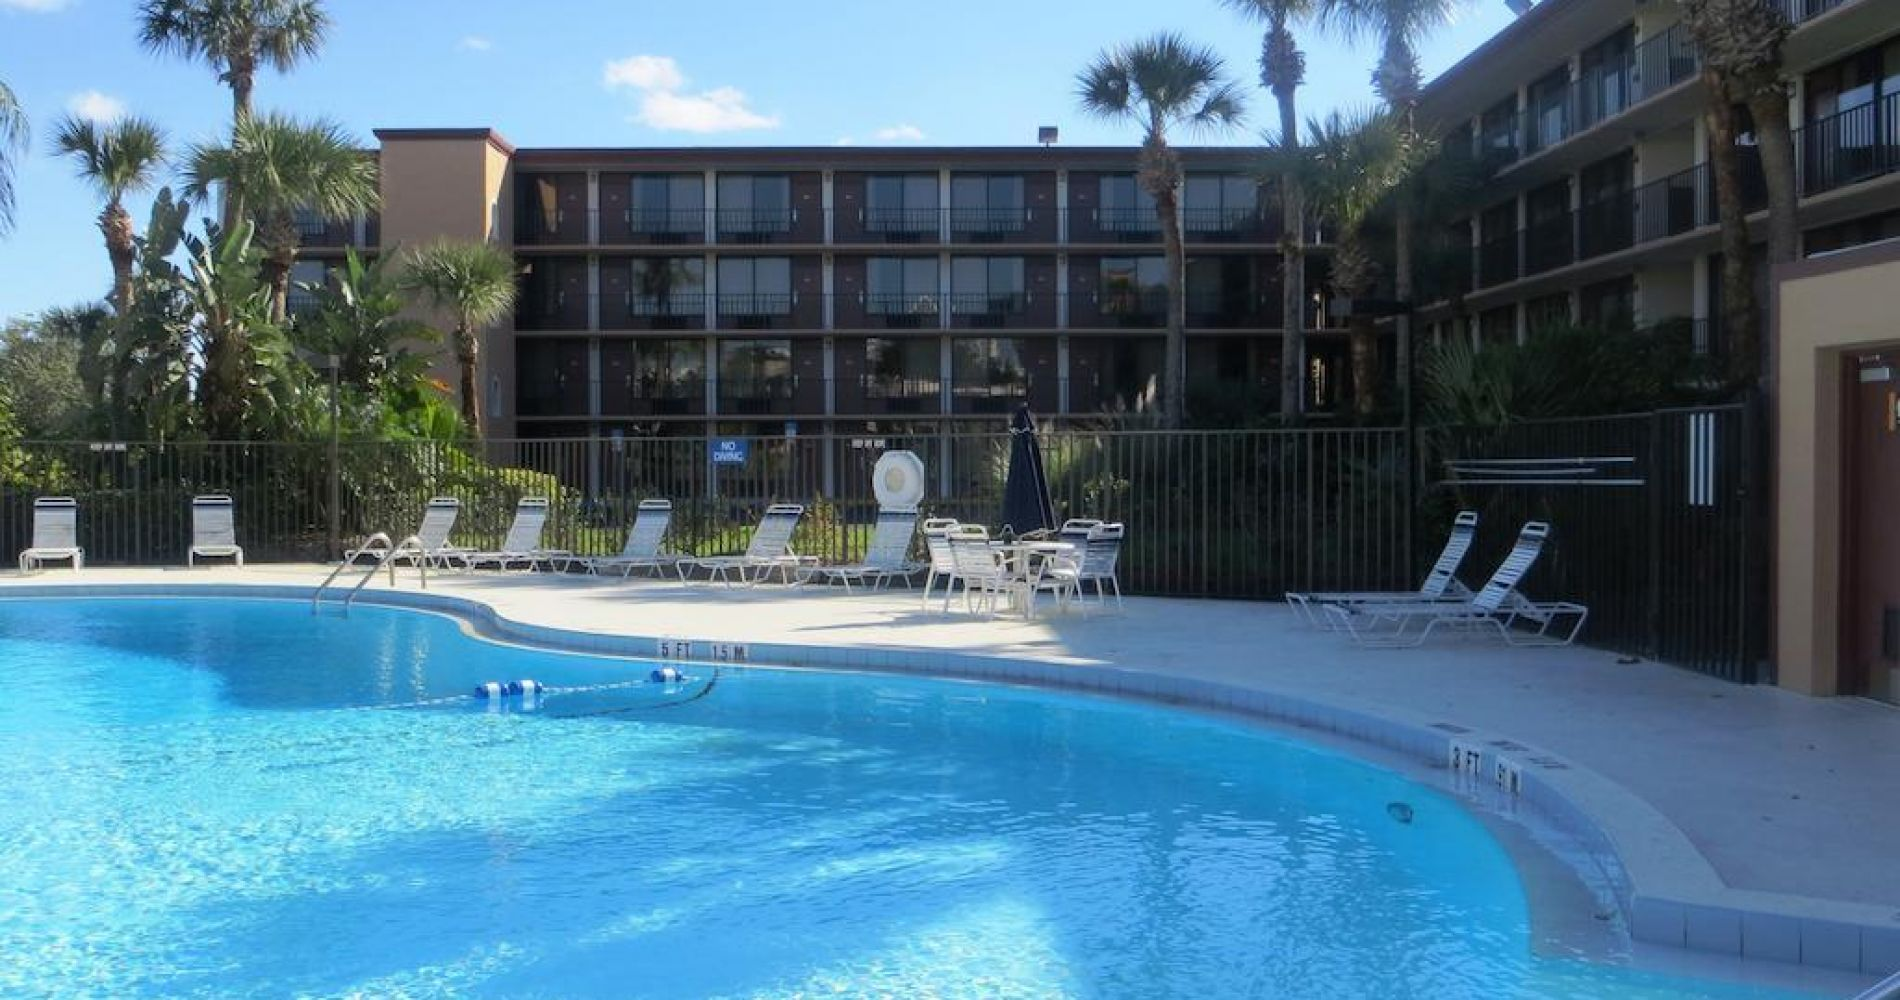 Days Inn By Wyndham Orlando Conv. Center/International Dr